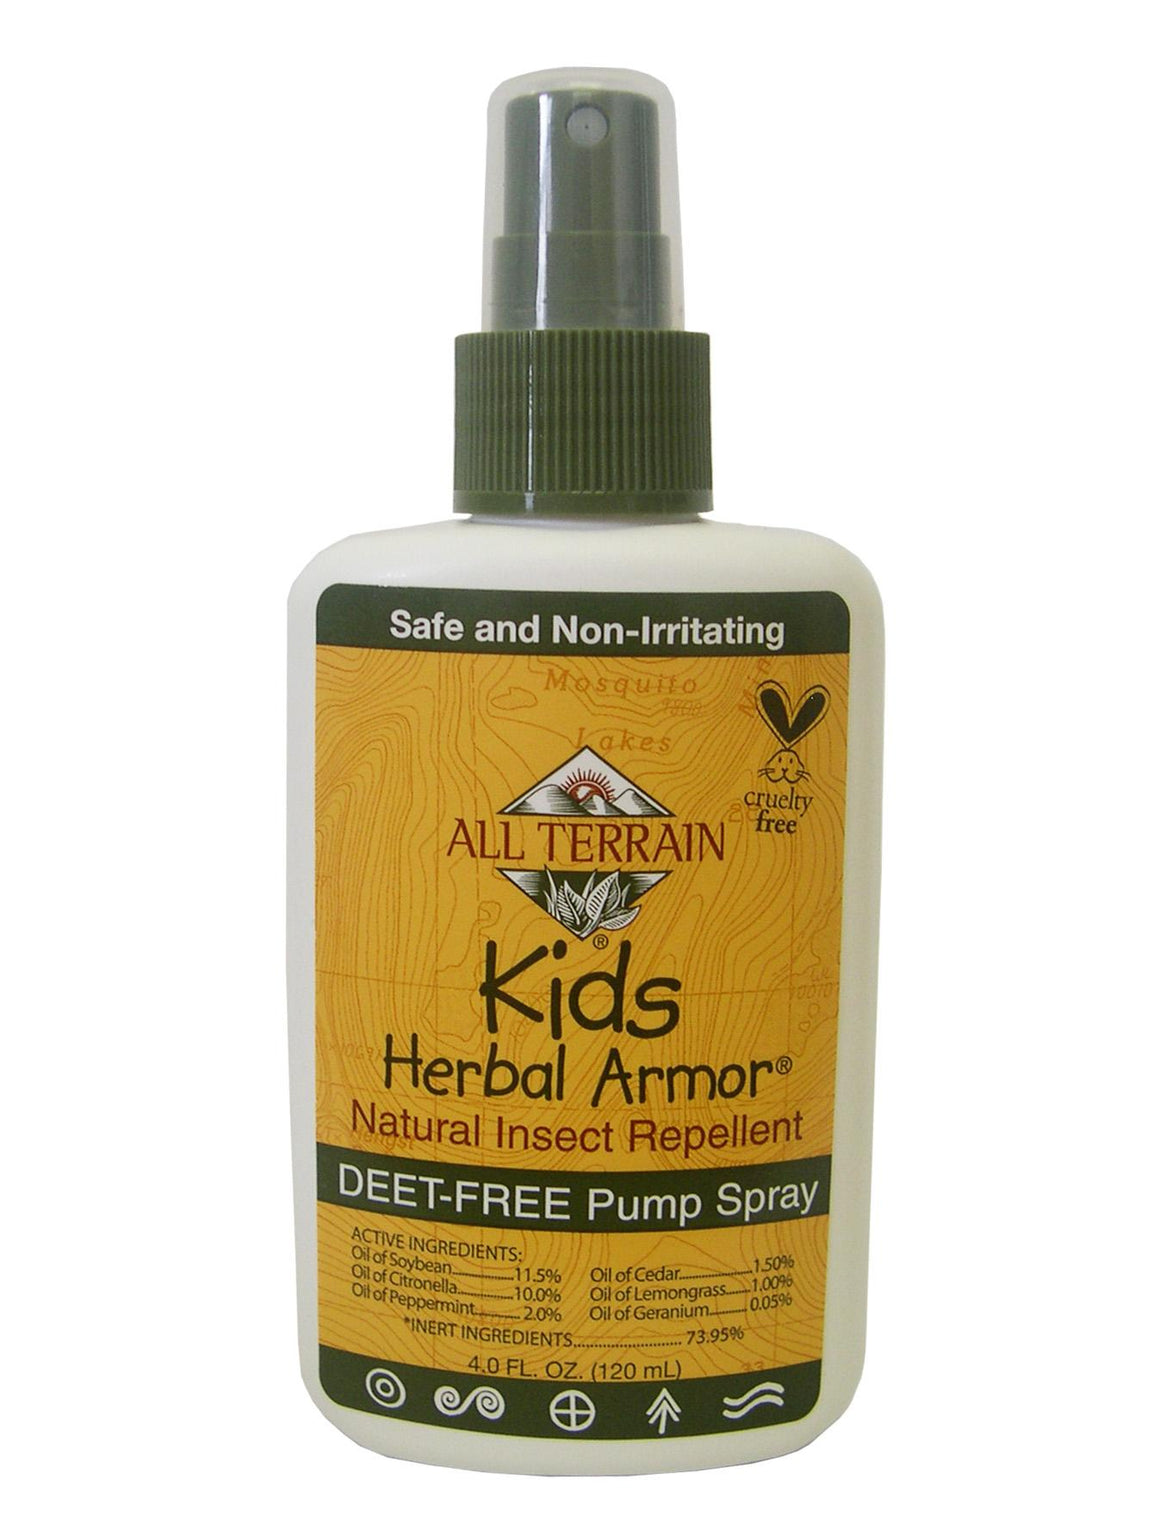 All Terrain Kids Herbal Armor Natural Insect Repellent, 4 oz spray pump and DEET free